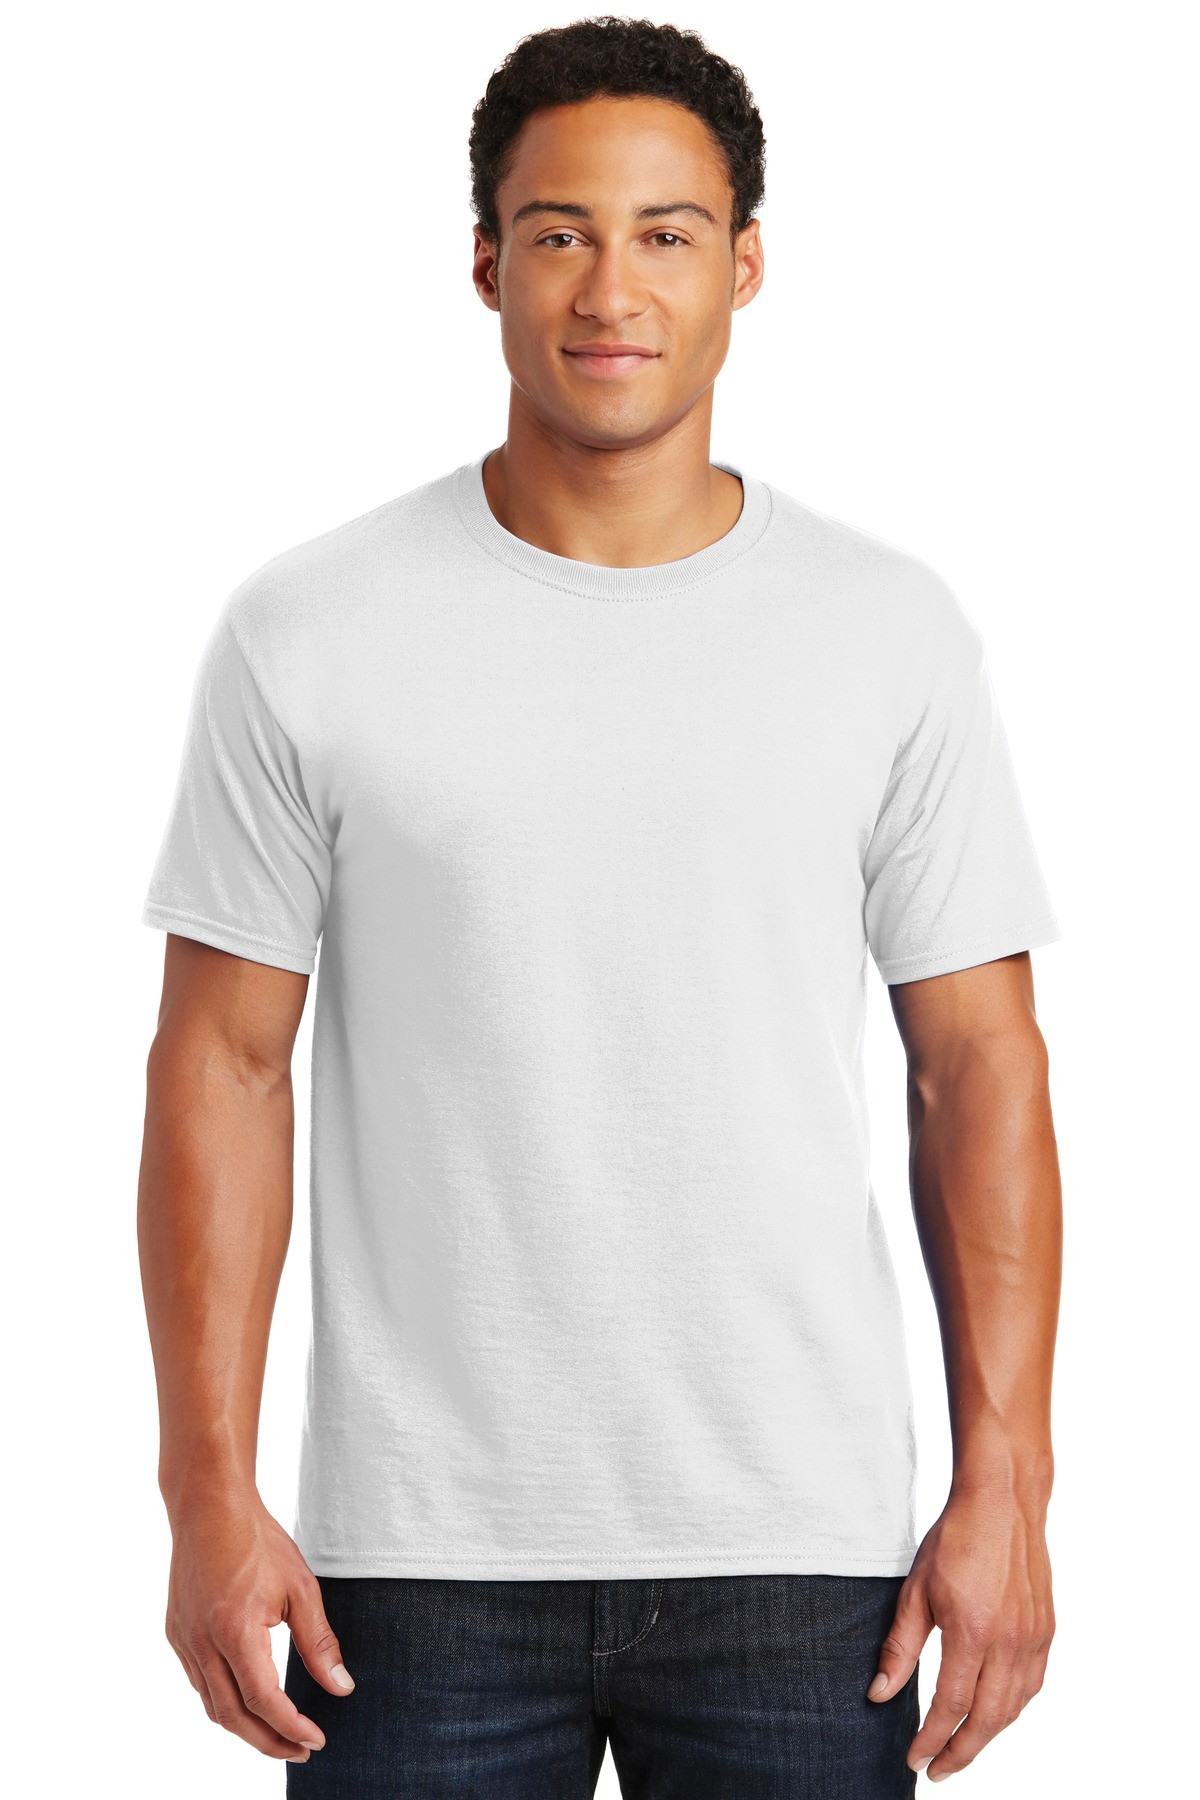 JERZEES ®  -  Dri-Power ®  Active 50/50 Cotton/Poly T-Shirt.  29M - White